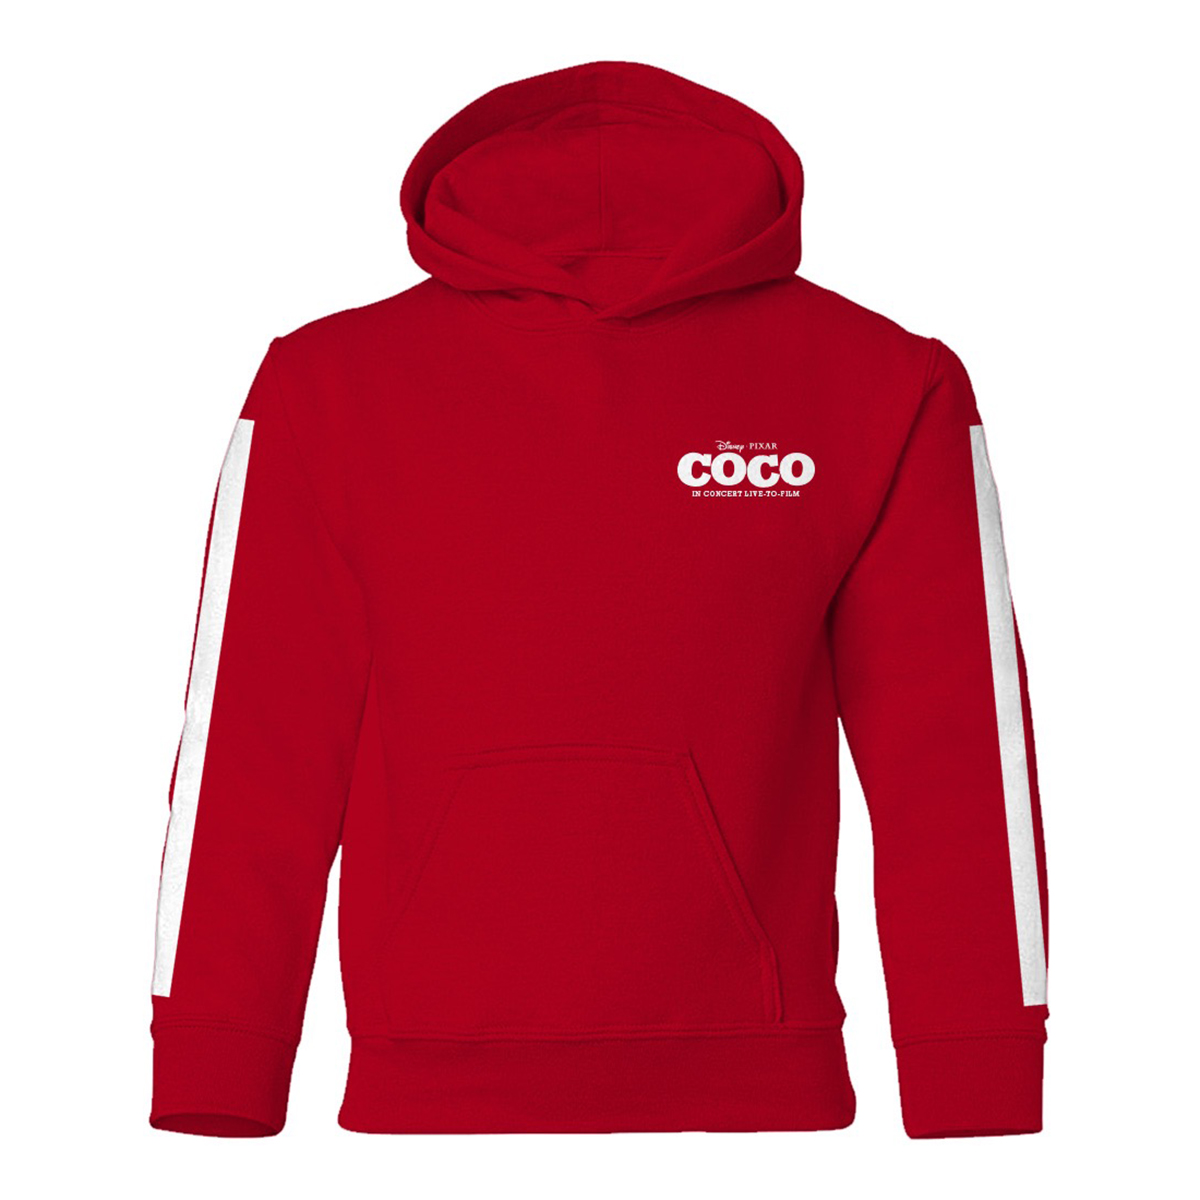 Coco Film Logo Youth Hoodie